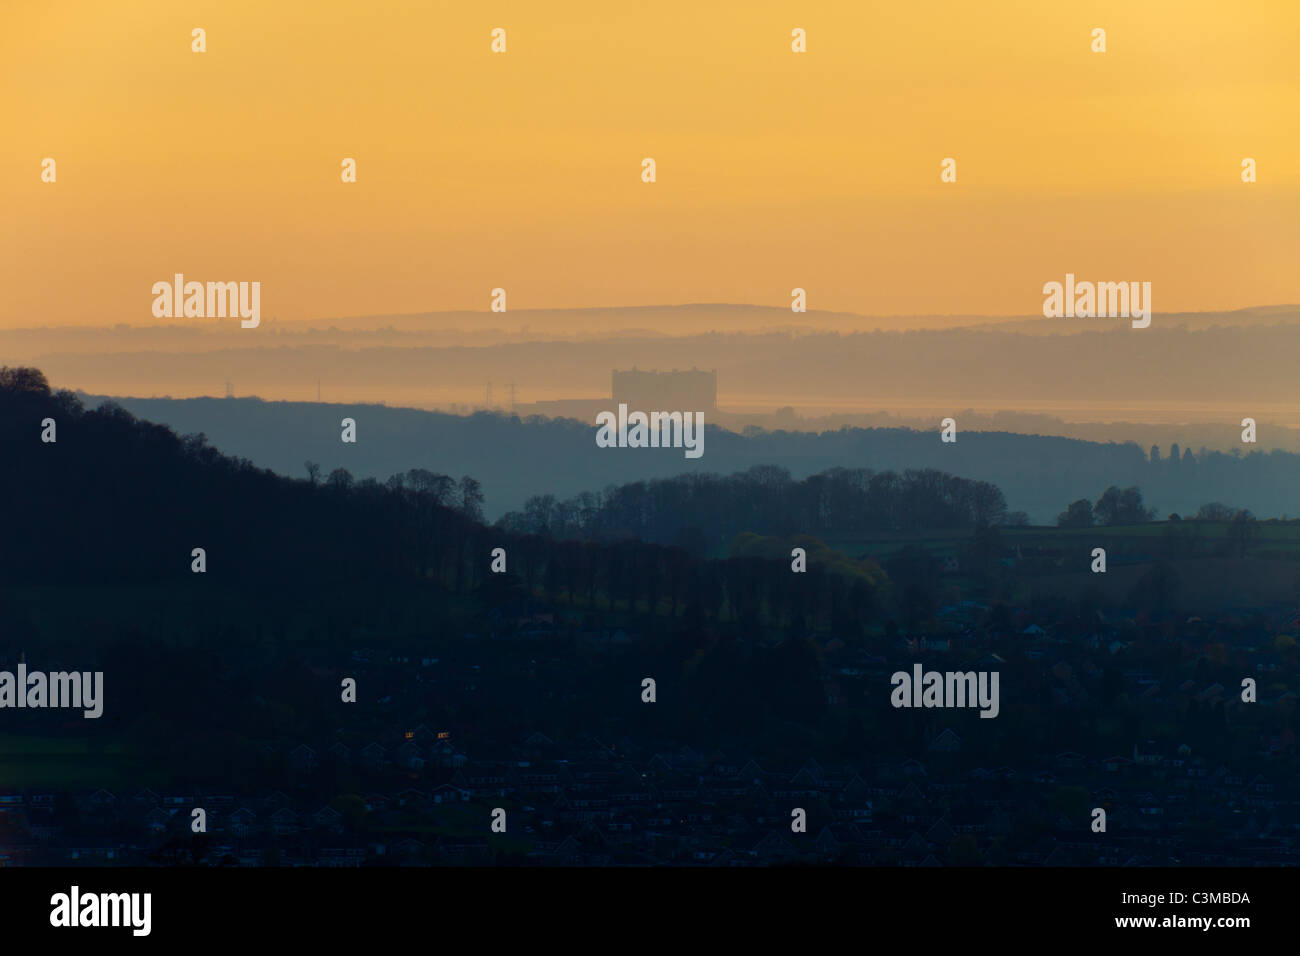 Dusk falling on Oldbury nuclear power station viewed from the Cotswolds across the intervening town of Dursley, - Stock Image